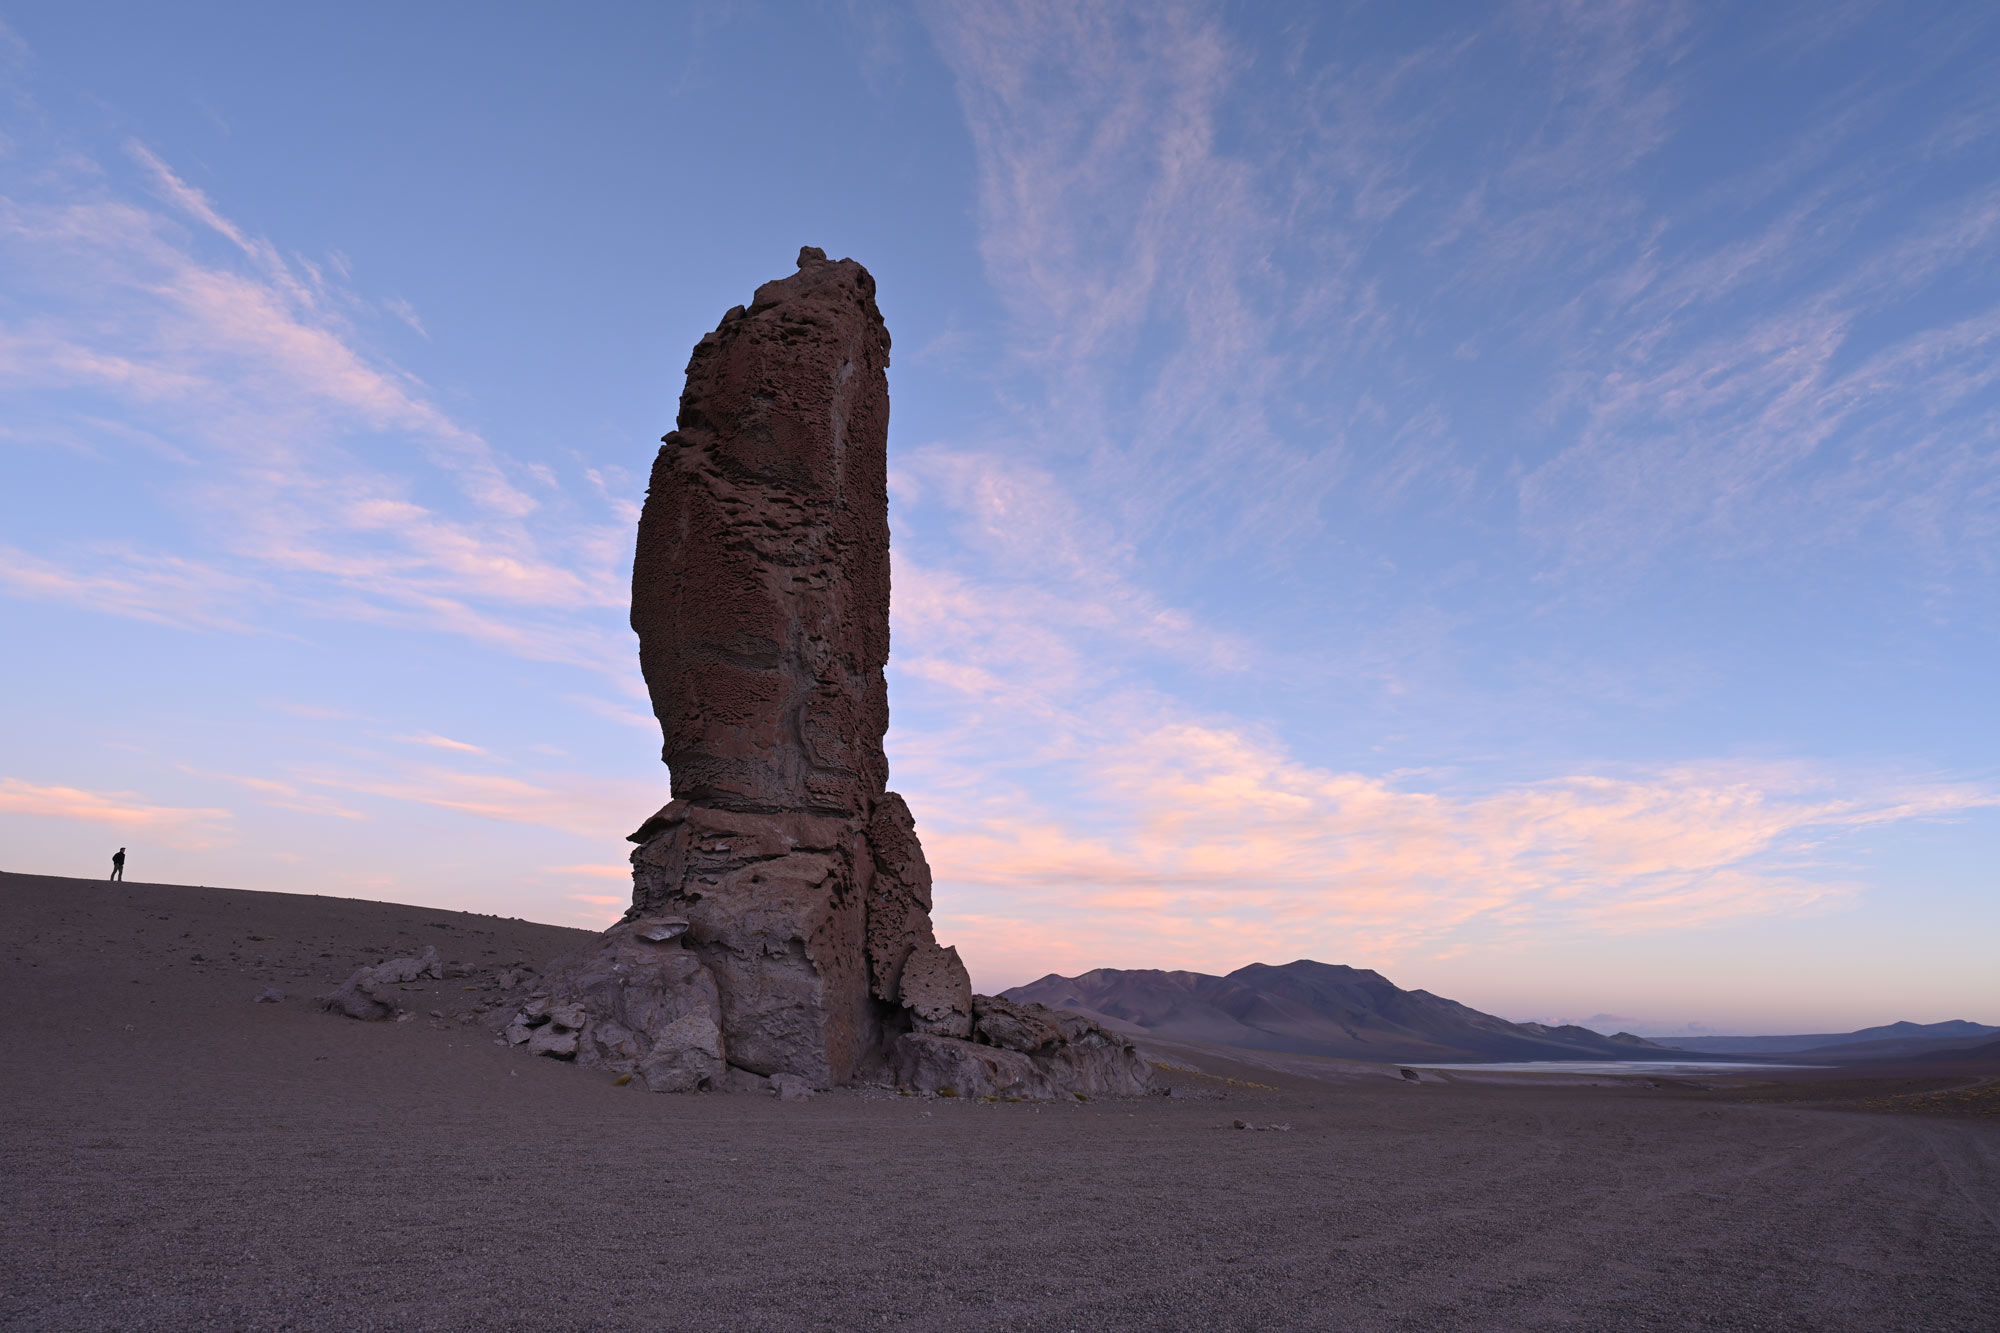 Photo of a rock outcropping in the desert, with a figure in silhouette in the distance, taken with the NIKKOR Z 20mm f/1.8 S